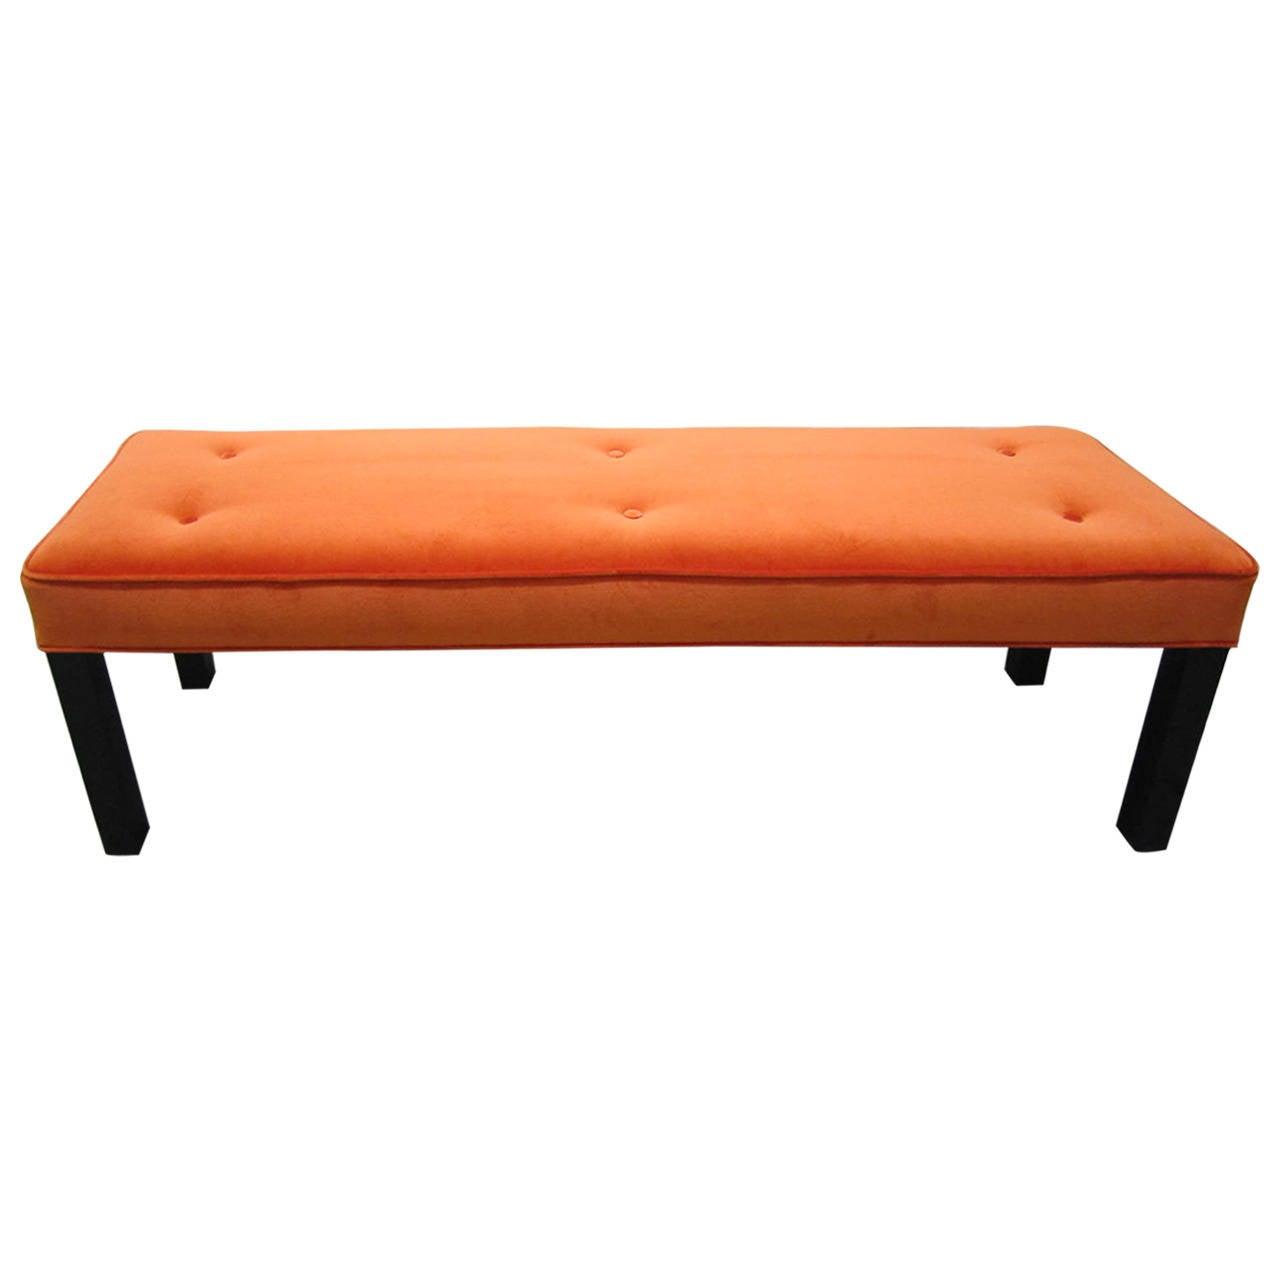 Gorgeous Probber Style Orange Velvet Bench, Mid-Century Modern